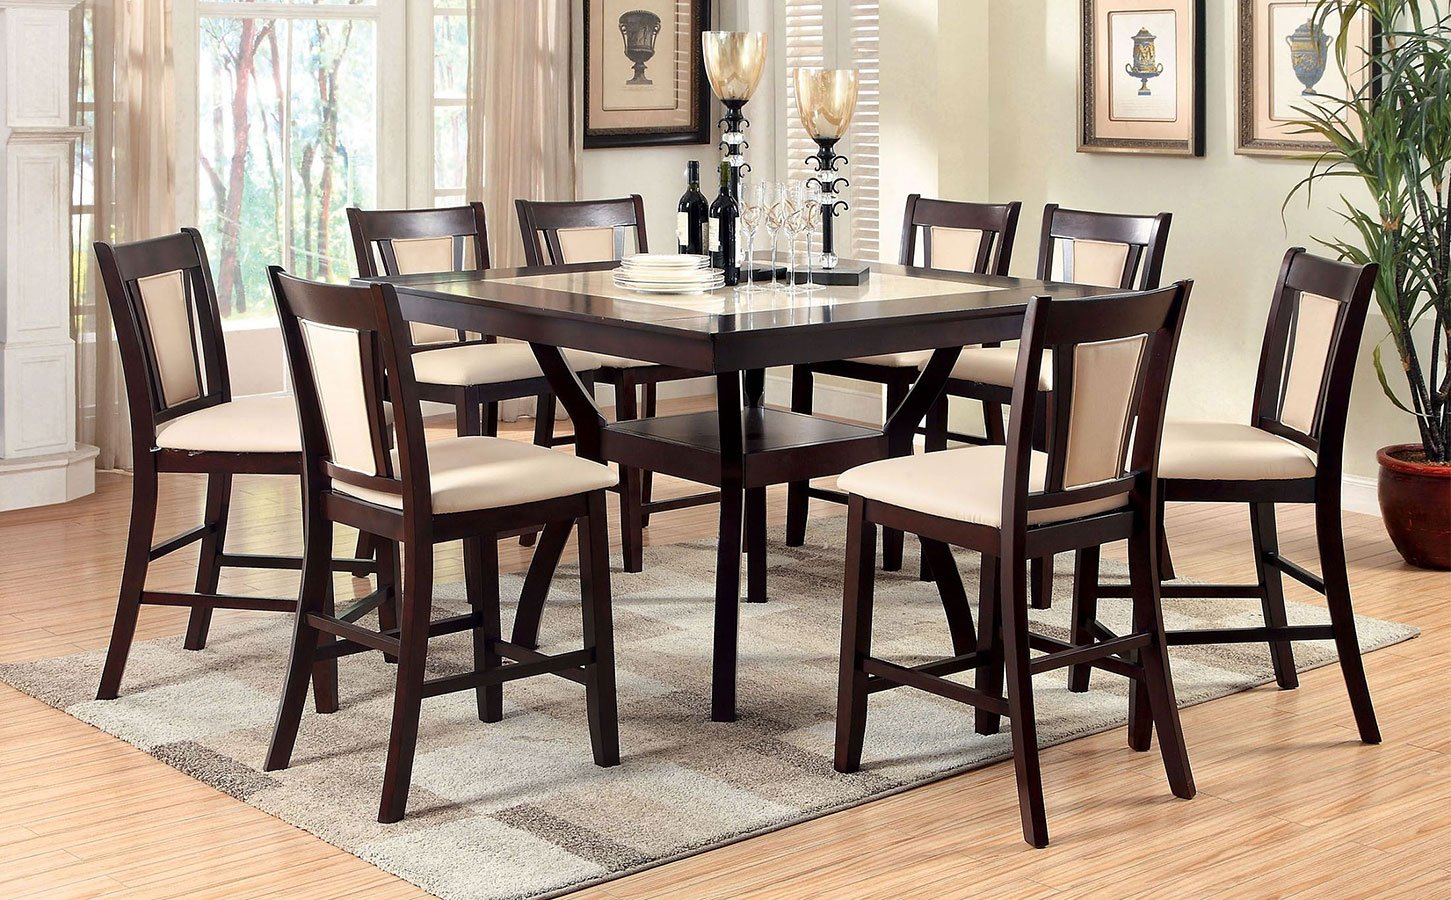 Brent II Counter Height Dining Set W/ Faux Marble Top